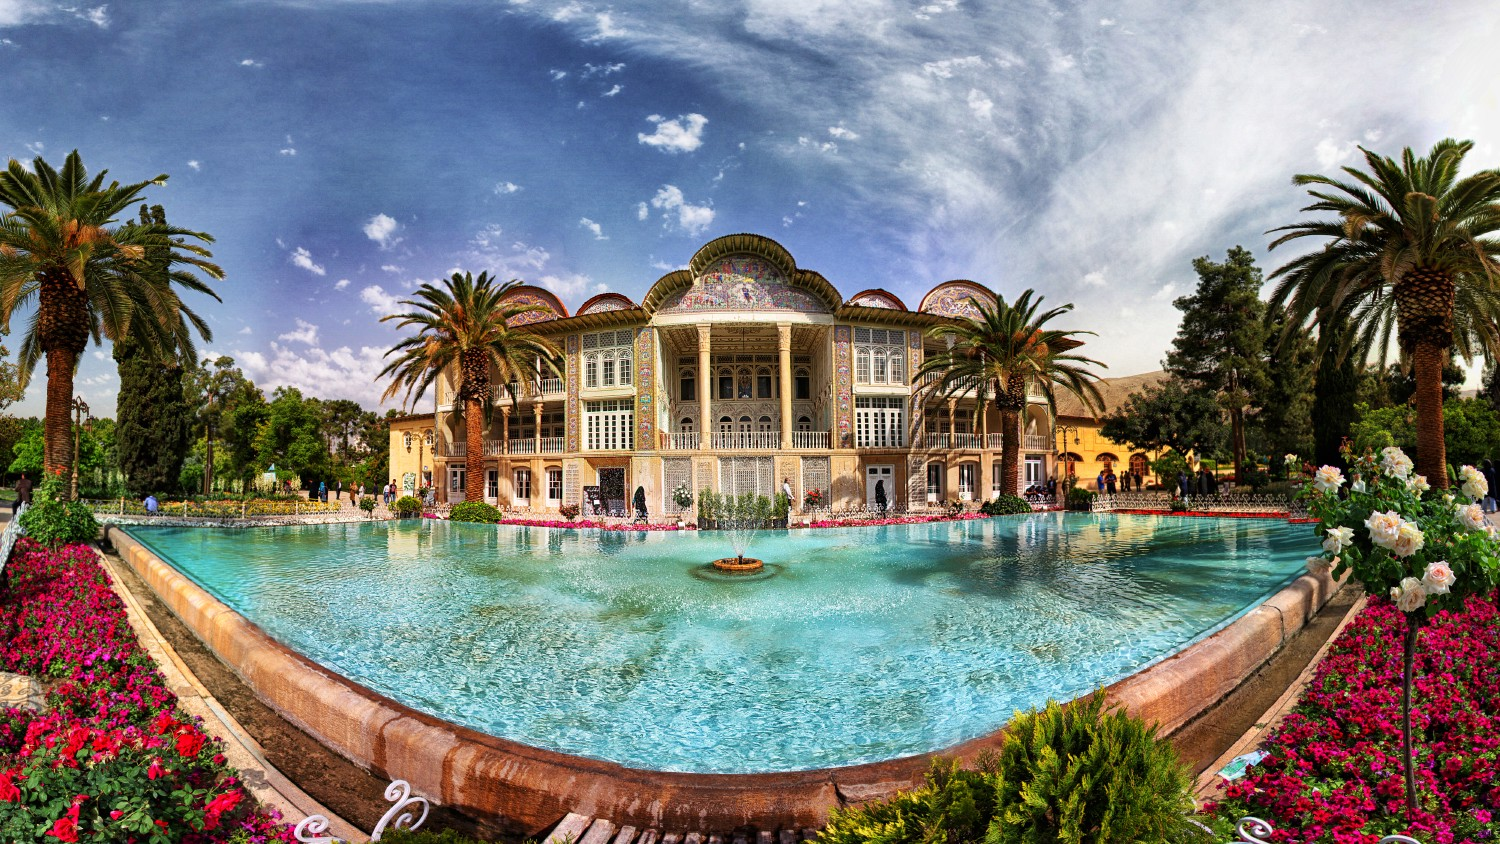 The Eram Garden in Shiraz | How Many Days to Visit Iran